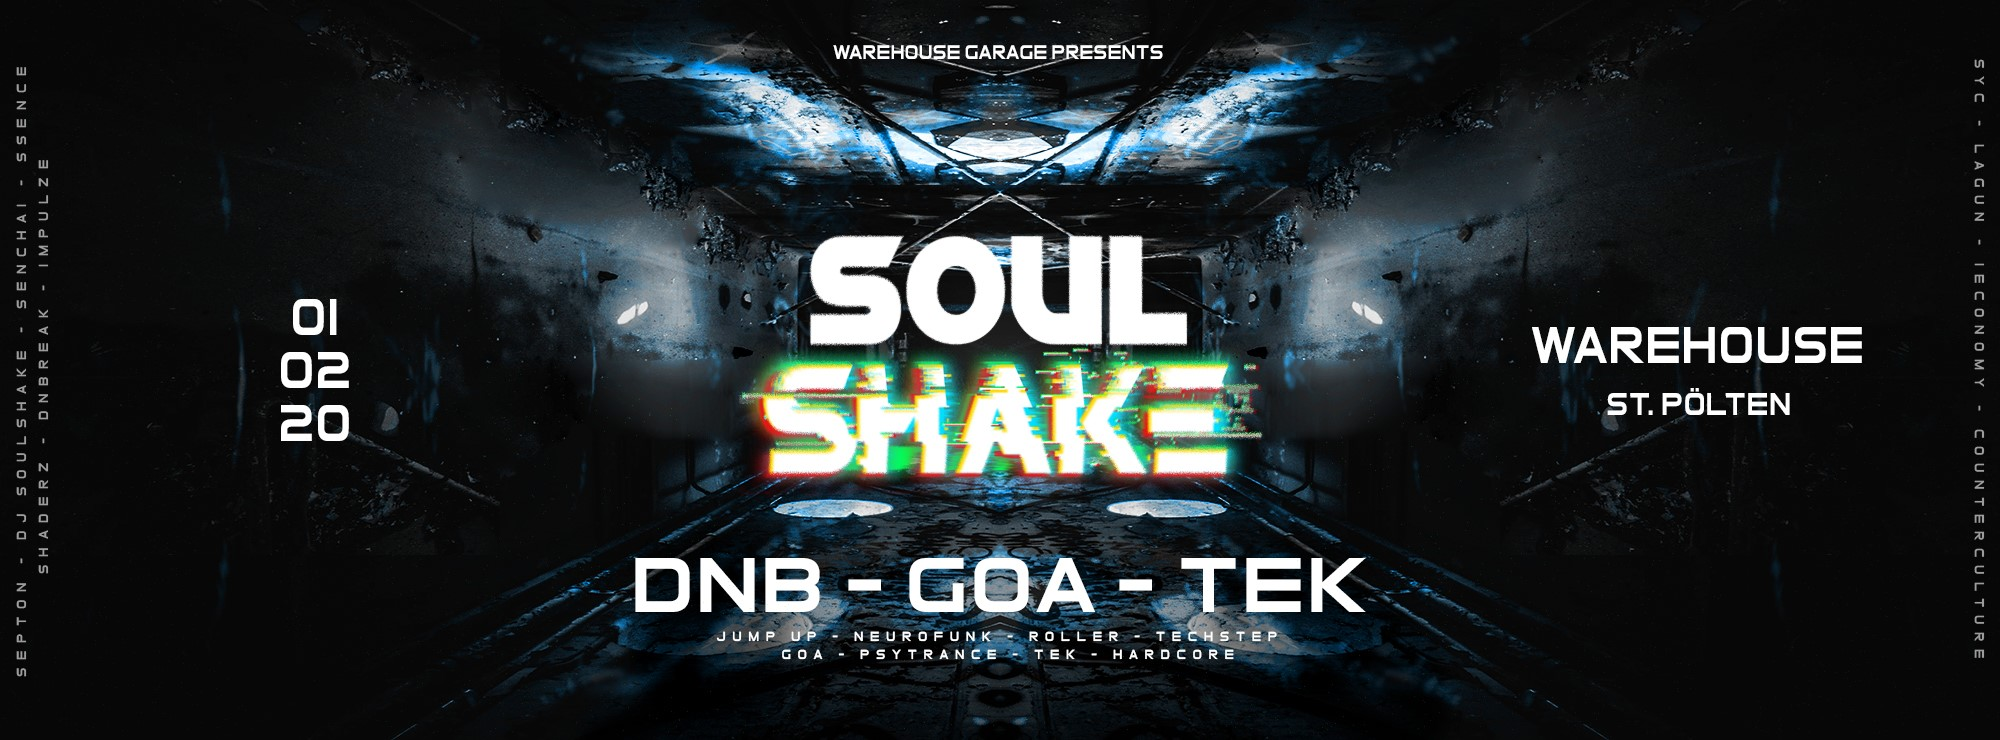 Soulshake w/ DNB, GOA & TEK am 1. February 2020 @ Warehouse.